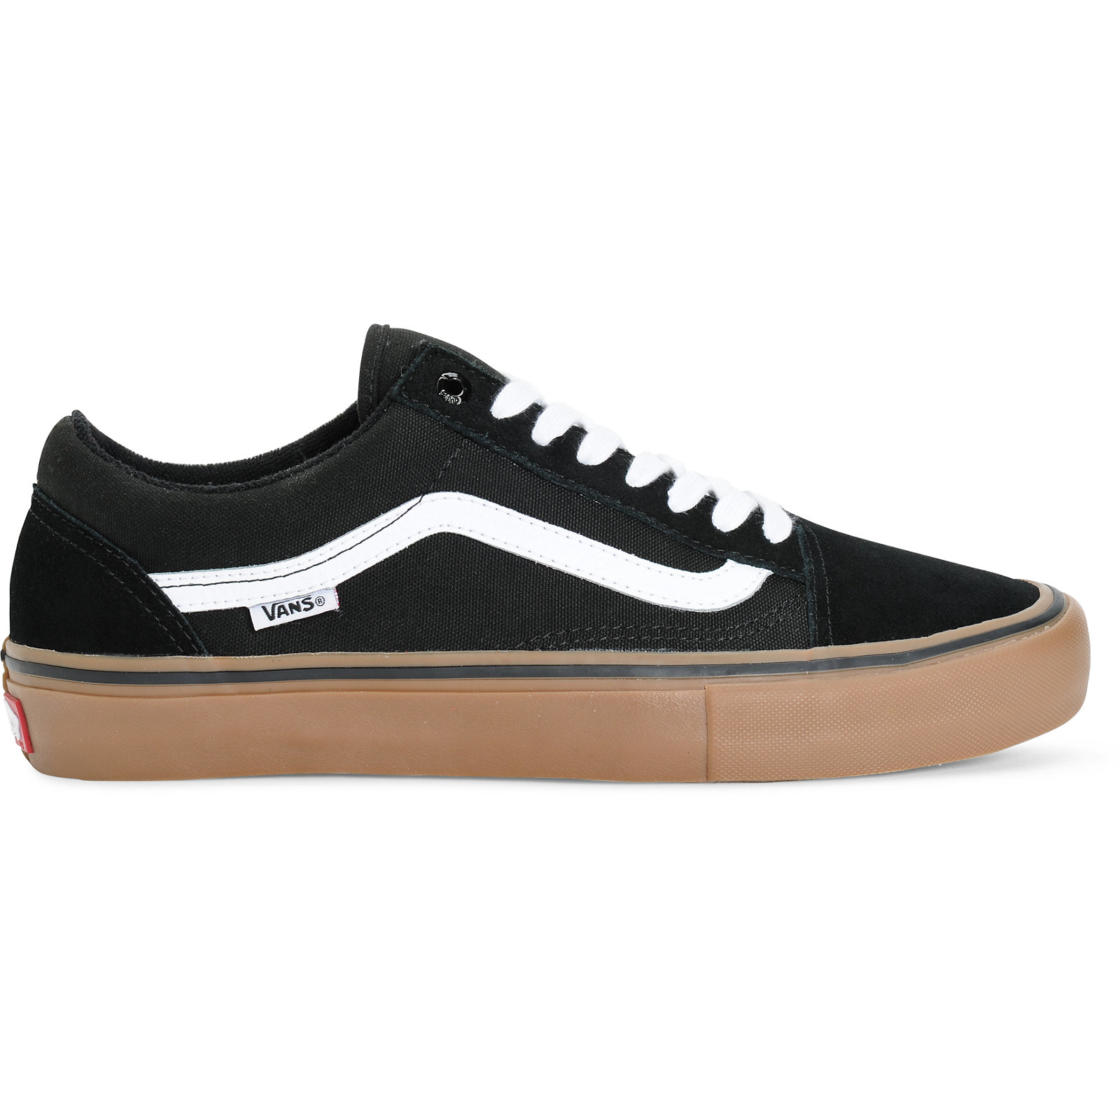 vans school shoes